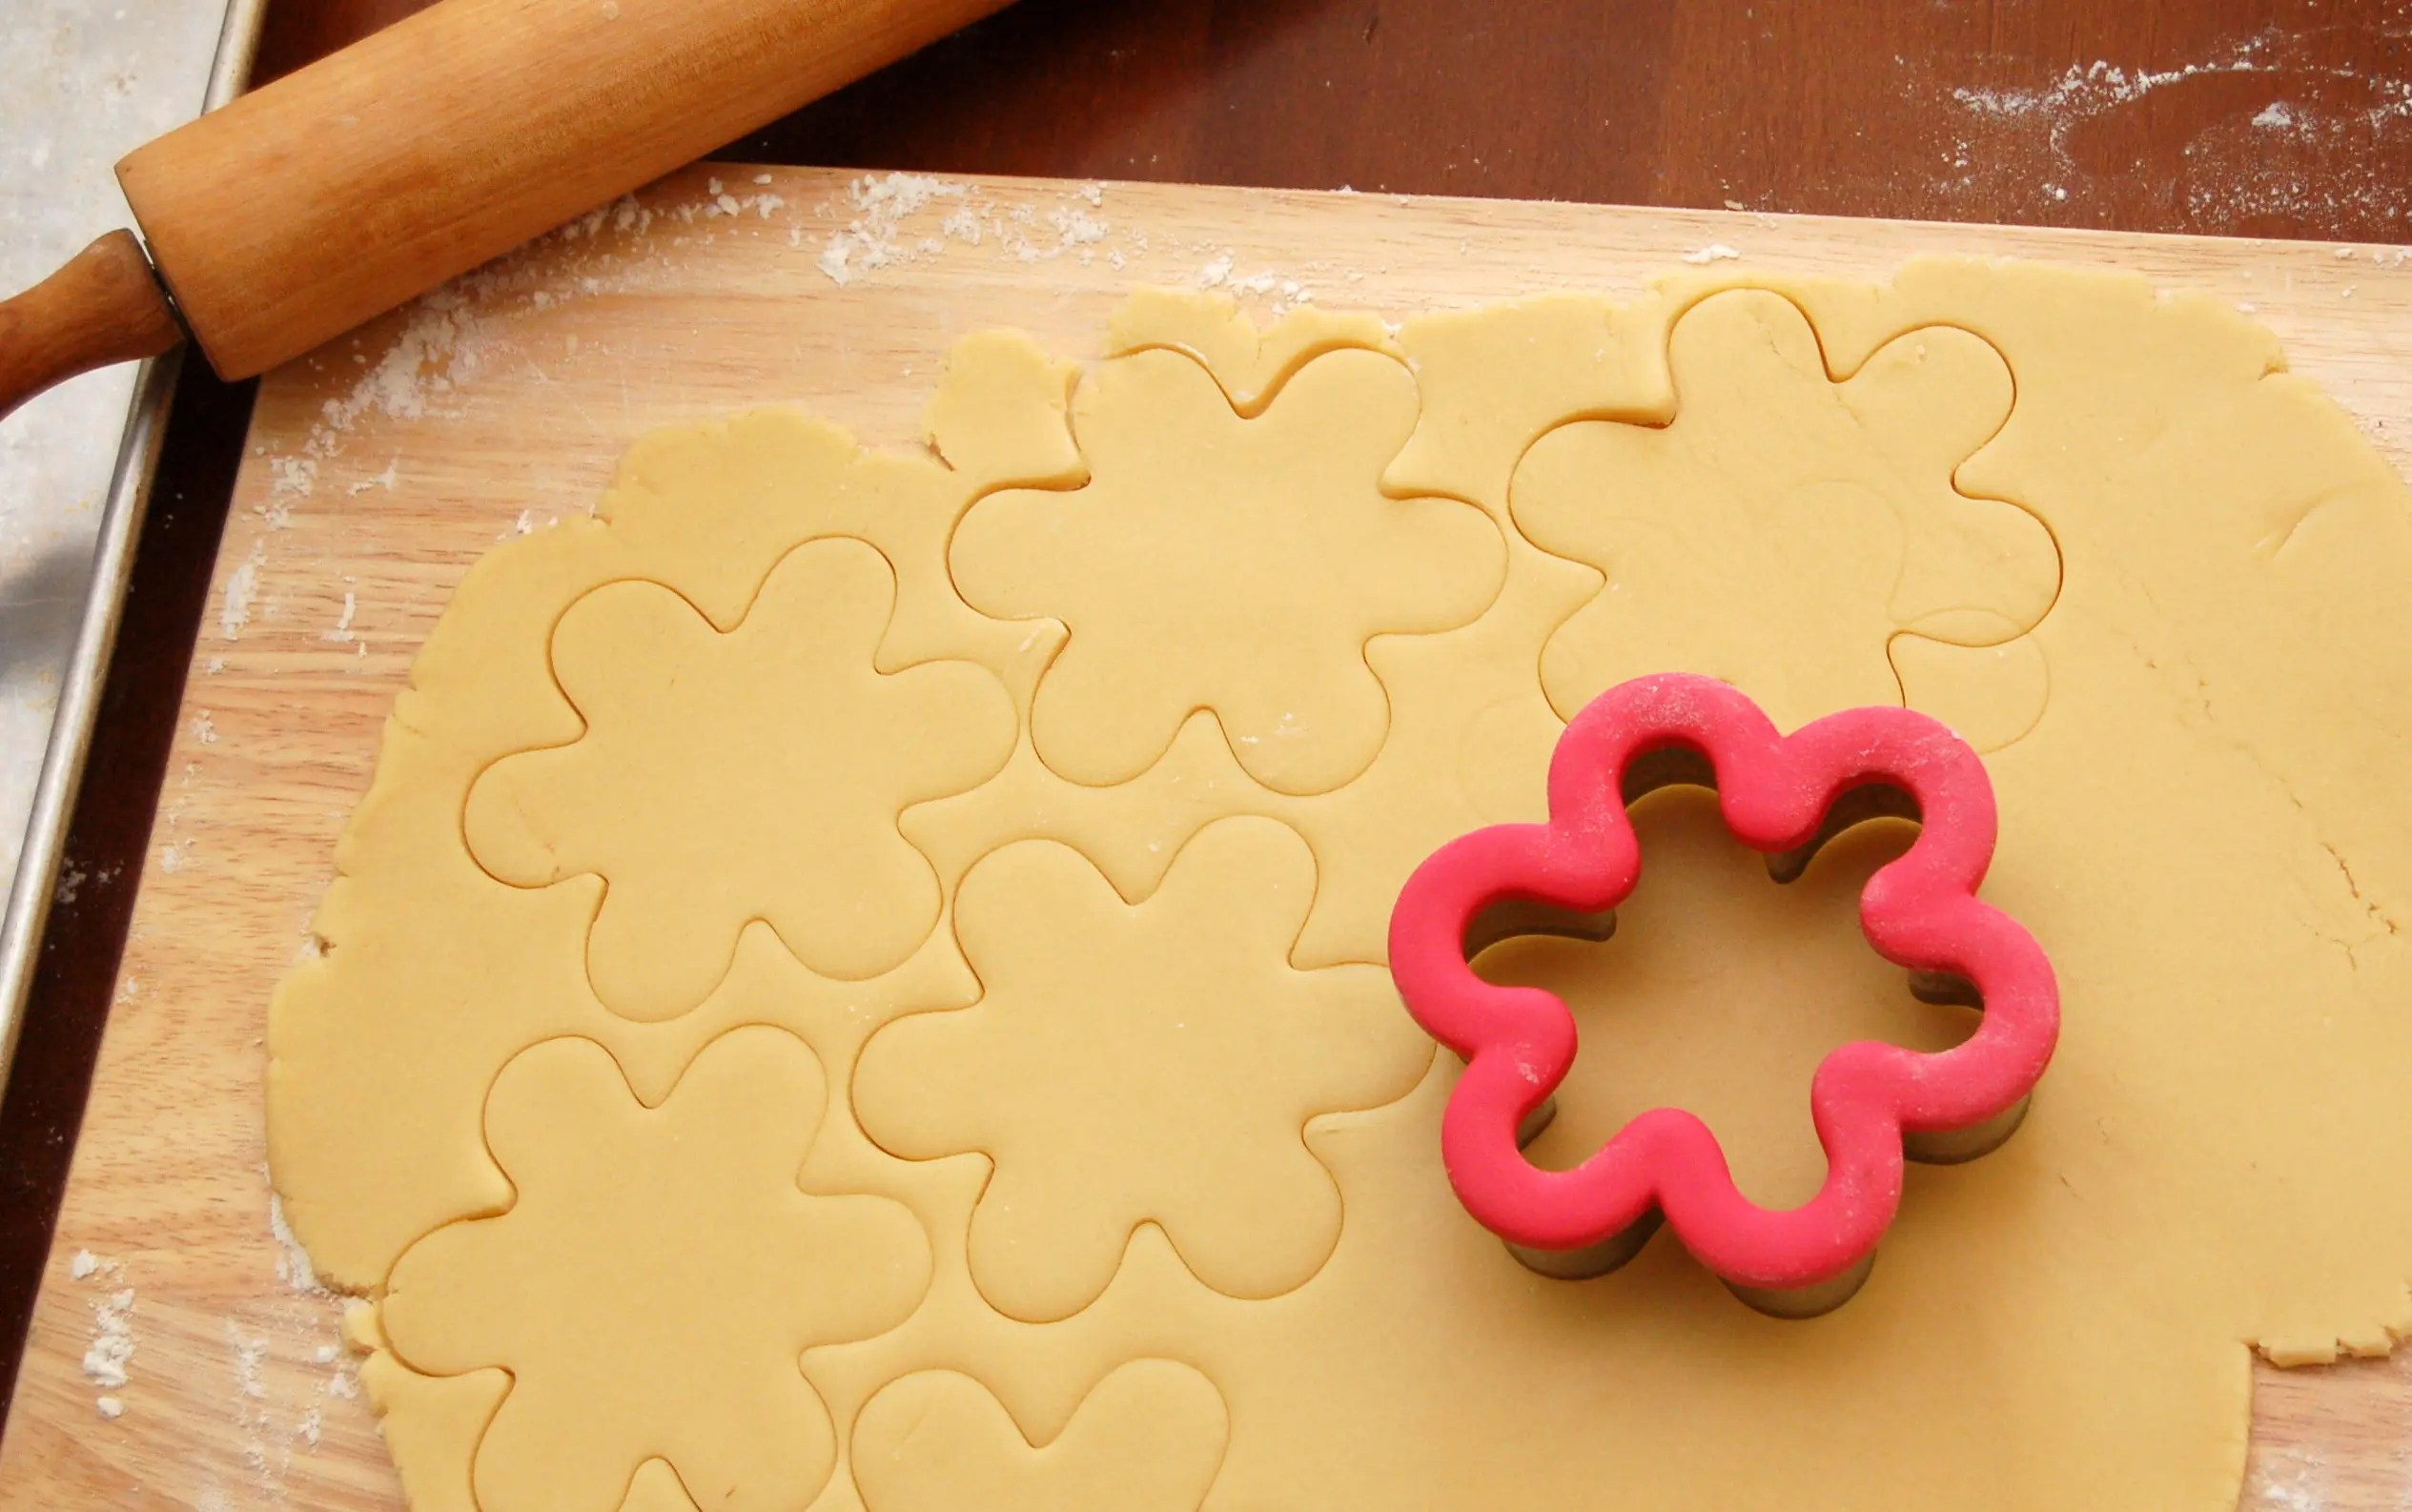 The Humble, but delicious, Sugar Cookie